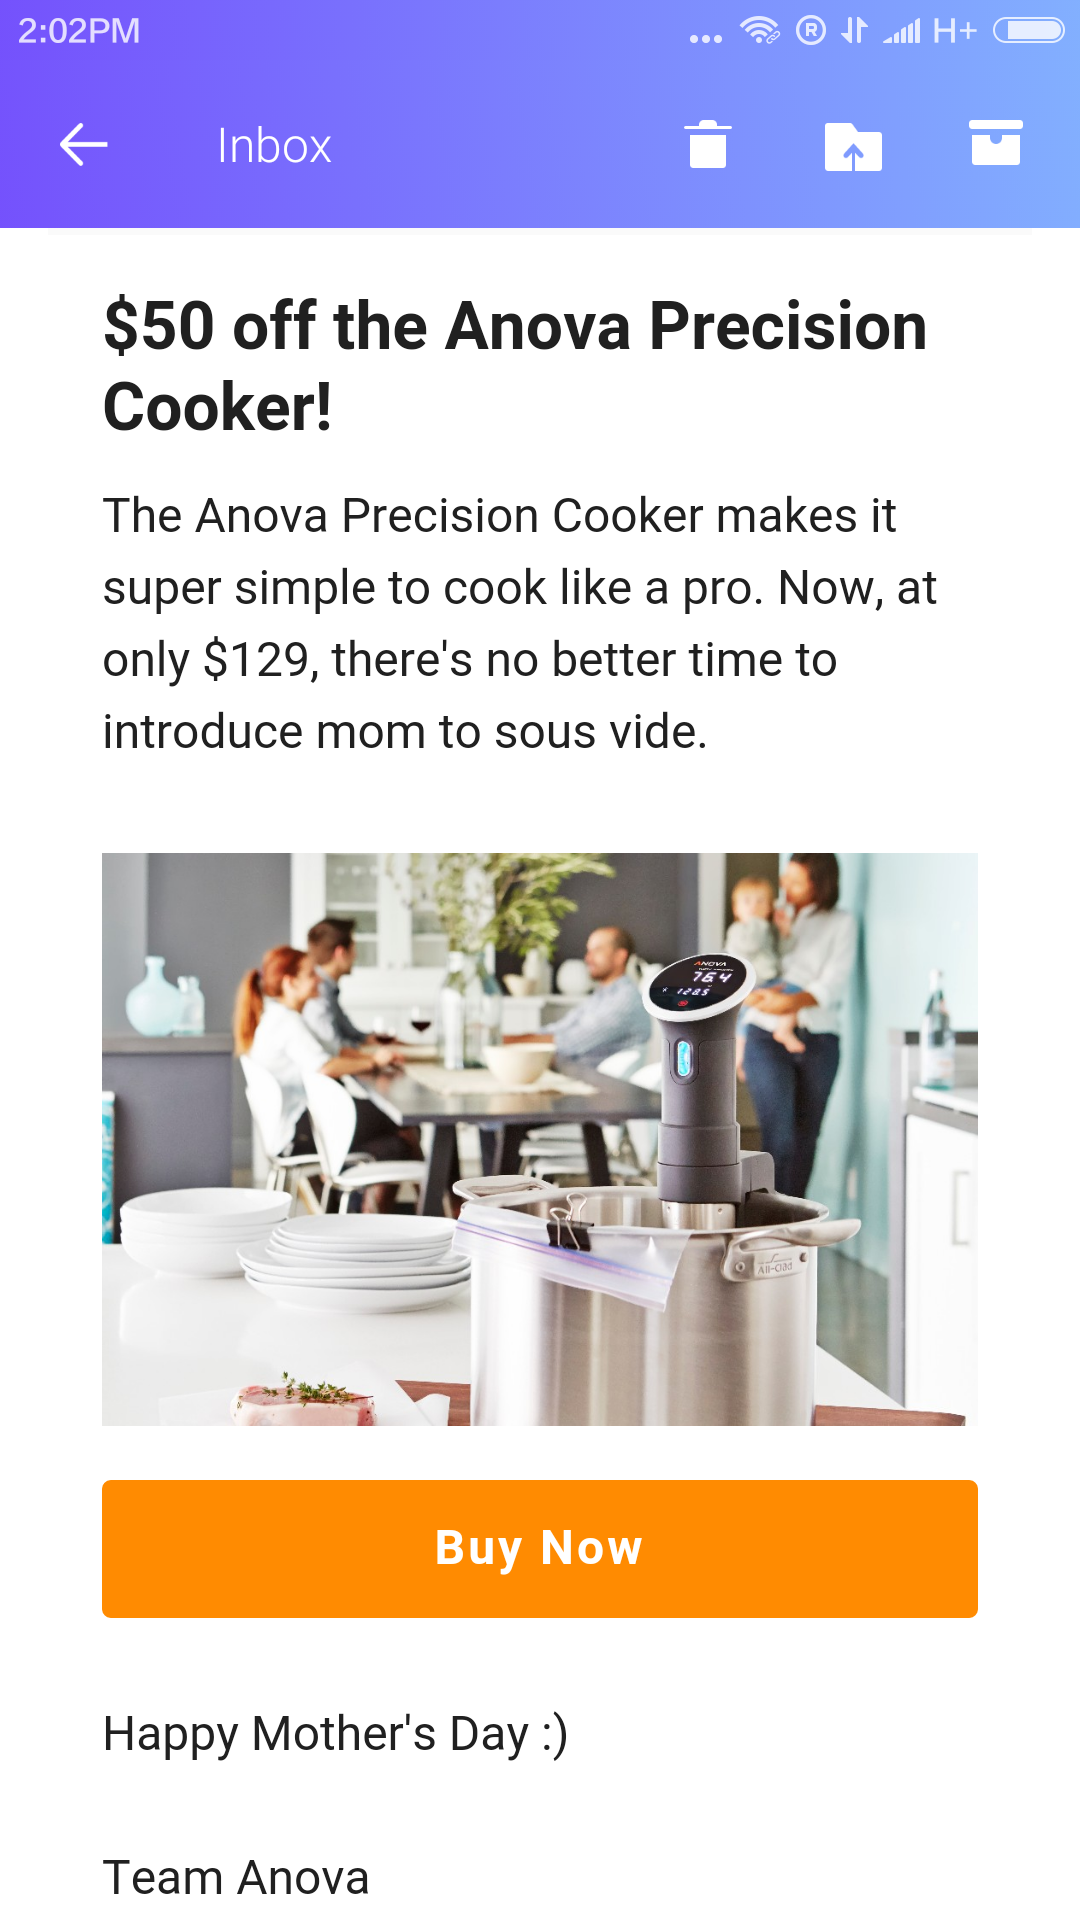 Best time yet to get the Anova Precision Cooker